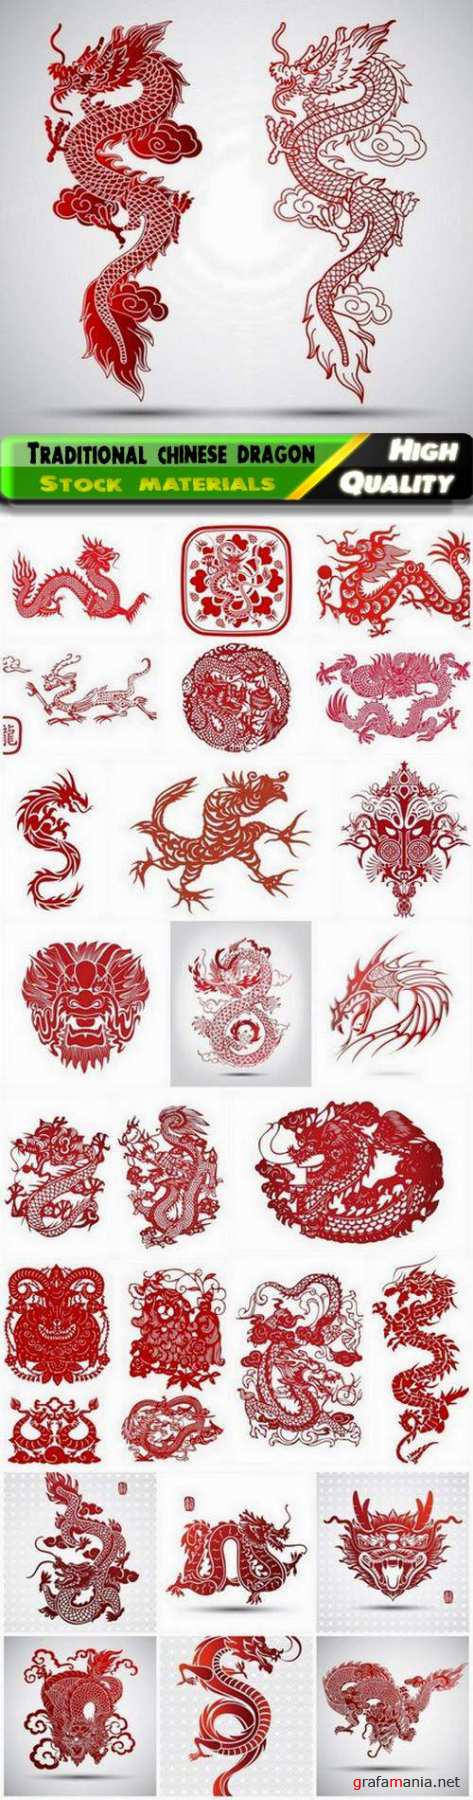 Illustration of traditional chinese dragon and snake - 25 Epsv